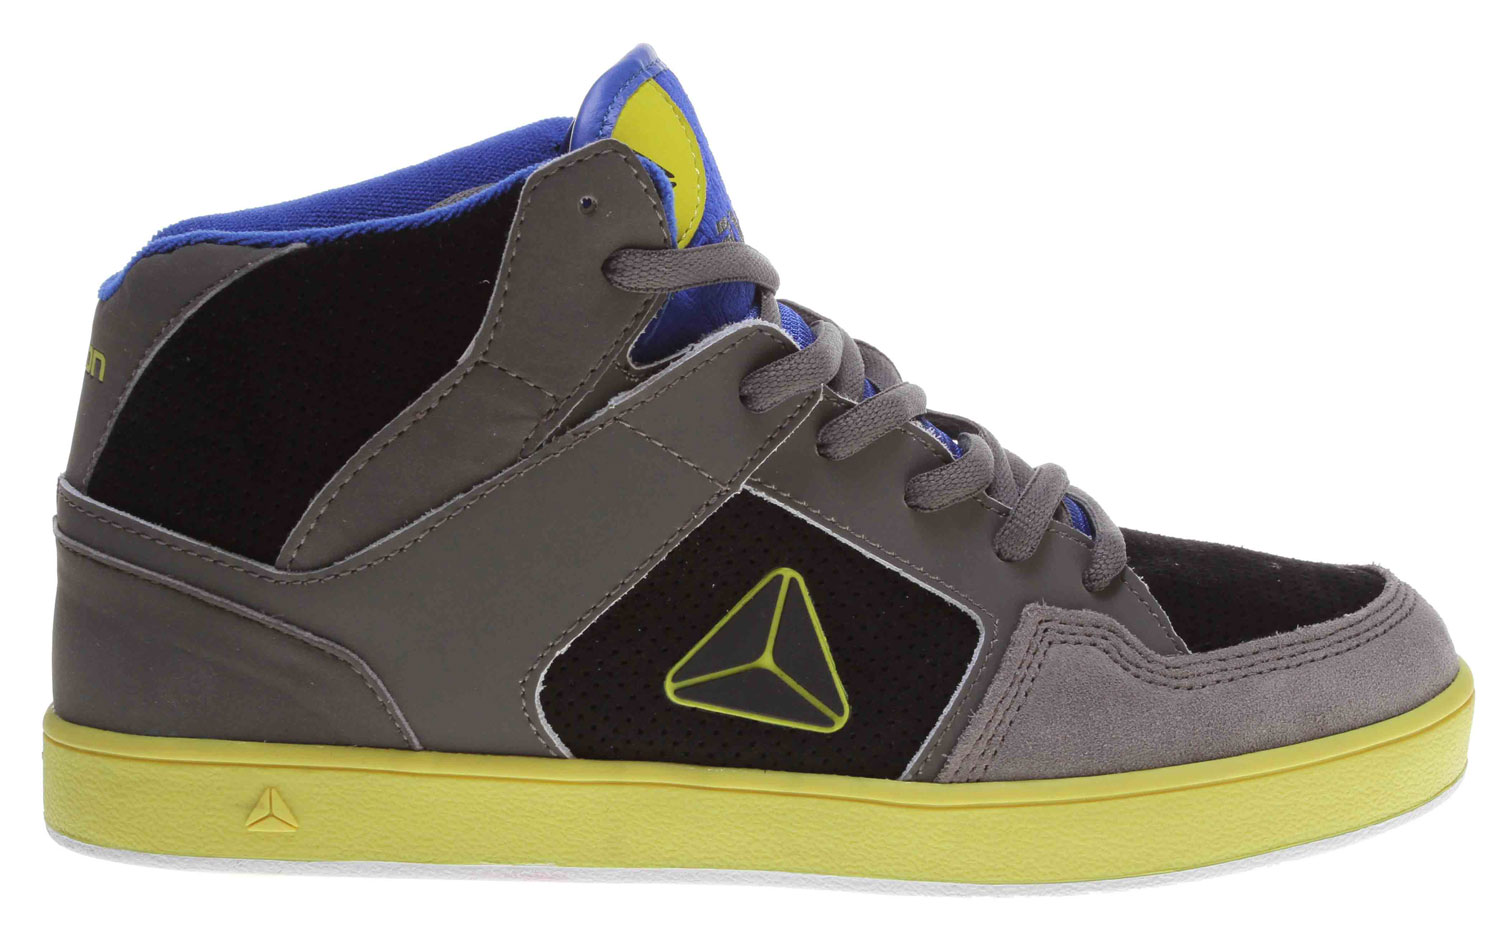 Skateboard The old school high-top flava of the Axion Atlas skate shoe features uppers of distressed action leather, action nubuck, or suede. It has a triple-stitched toecap for added durability. A padded tongue and collar are included for added comfort and support. The fabric lining helps wick away moisture. A super-cush footbed is added for long-lasting comfort. Finally the durable rubber outsole is there for added traction and long use-time. Time for sum AXION! - $57.95